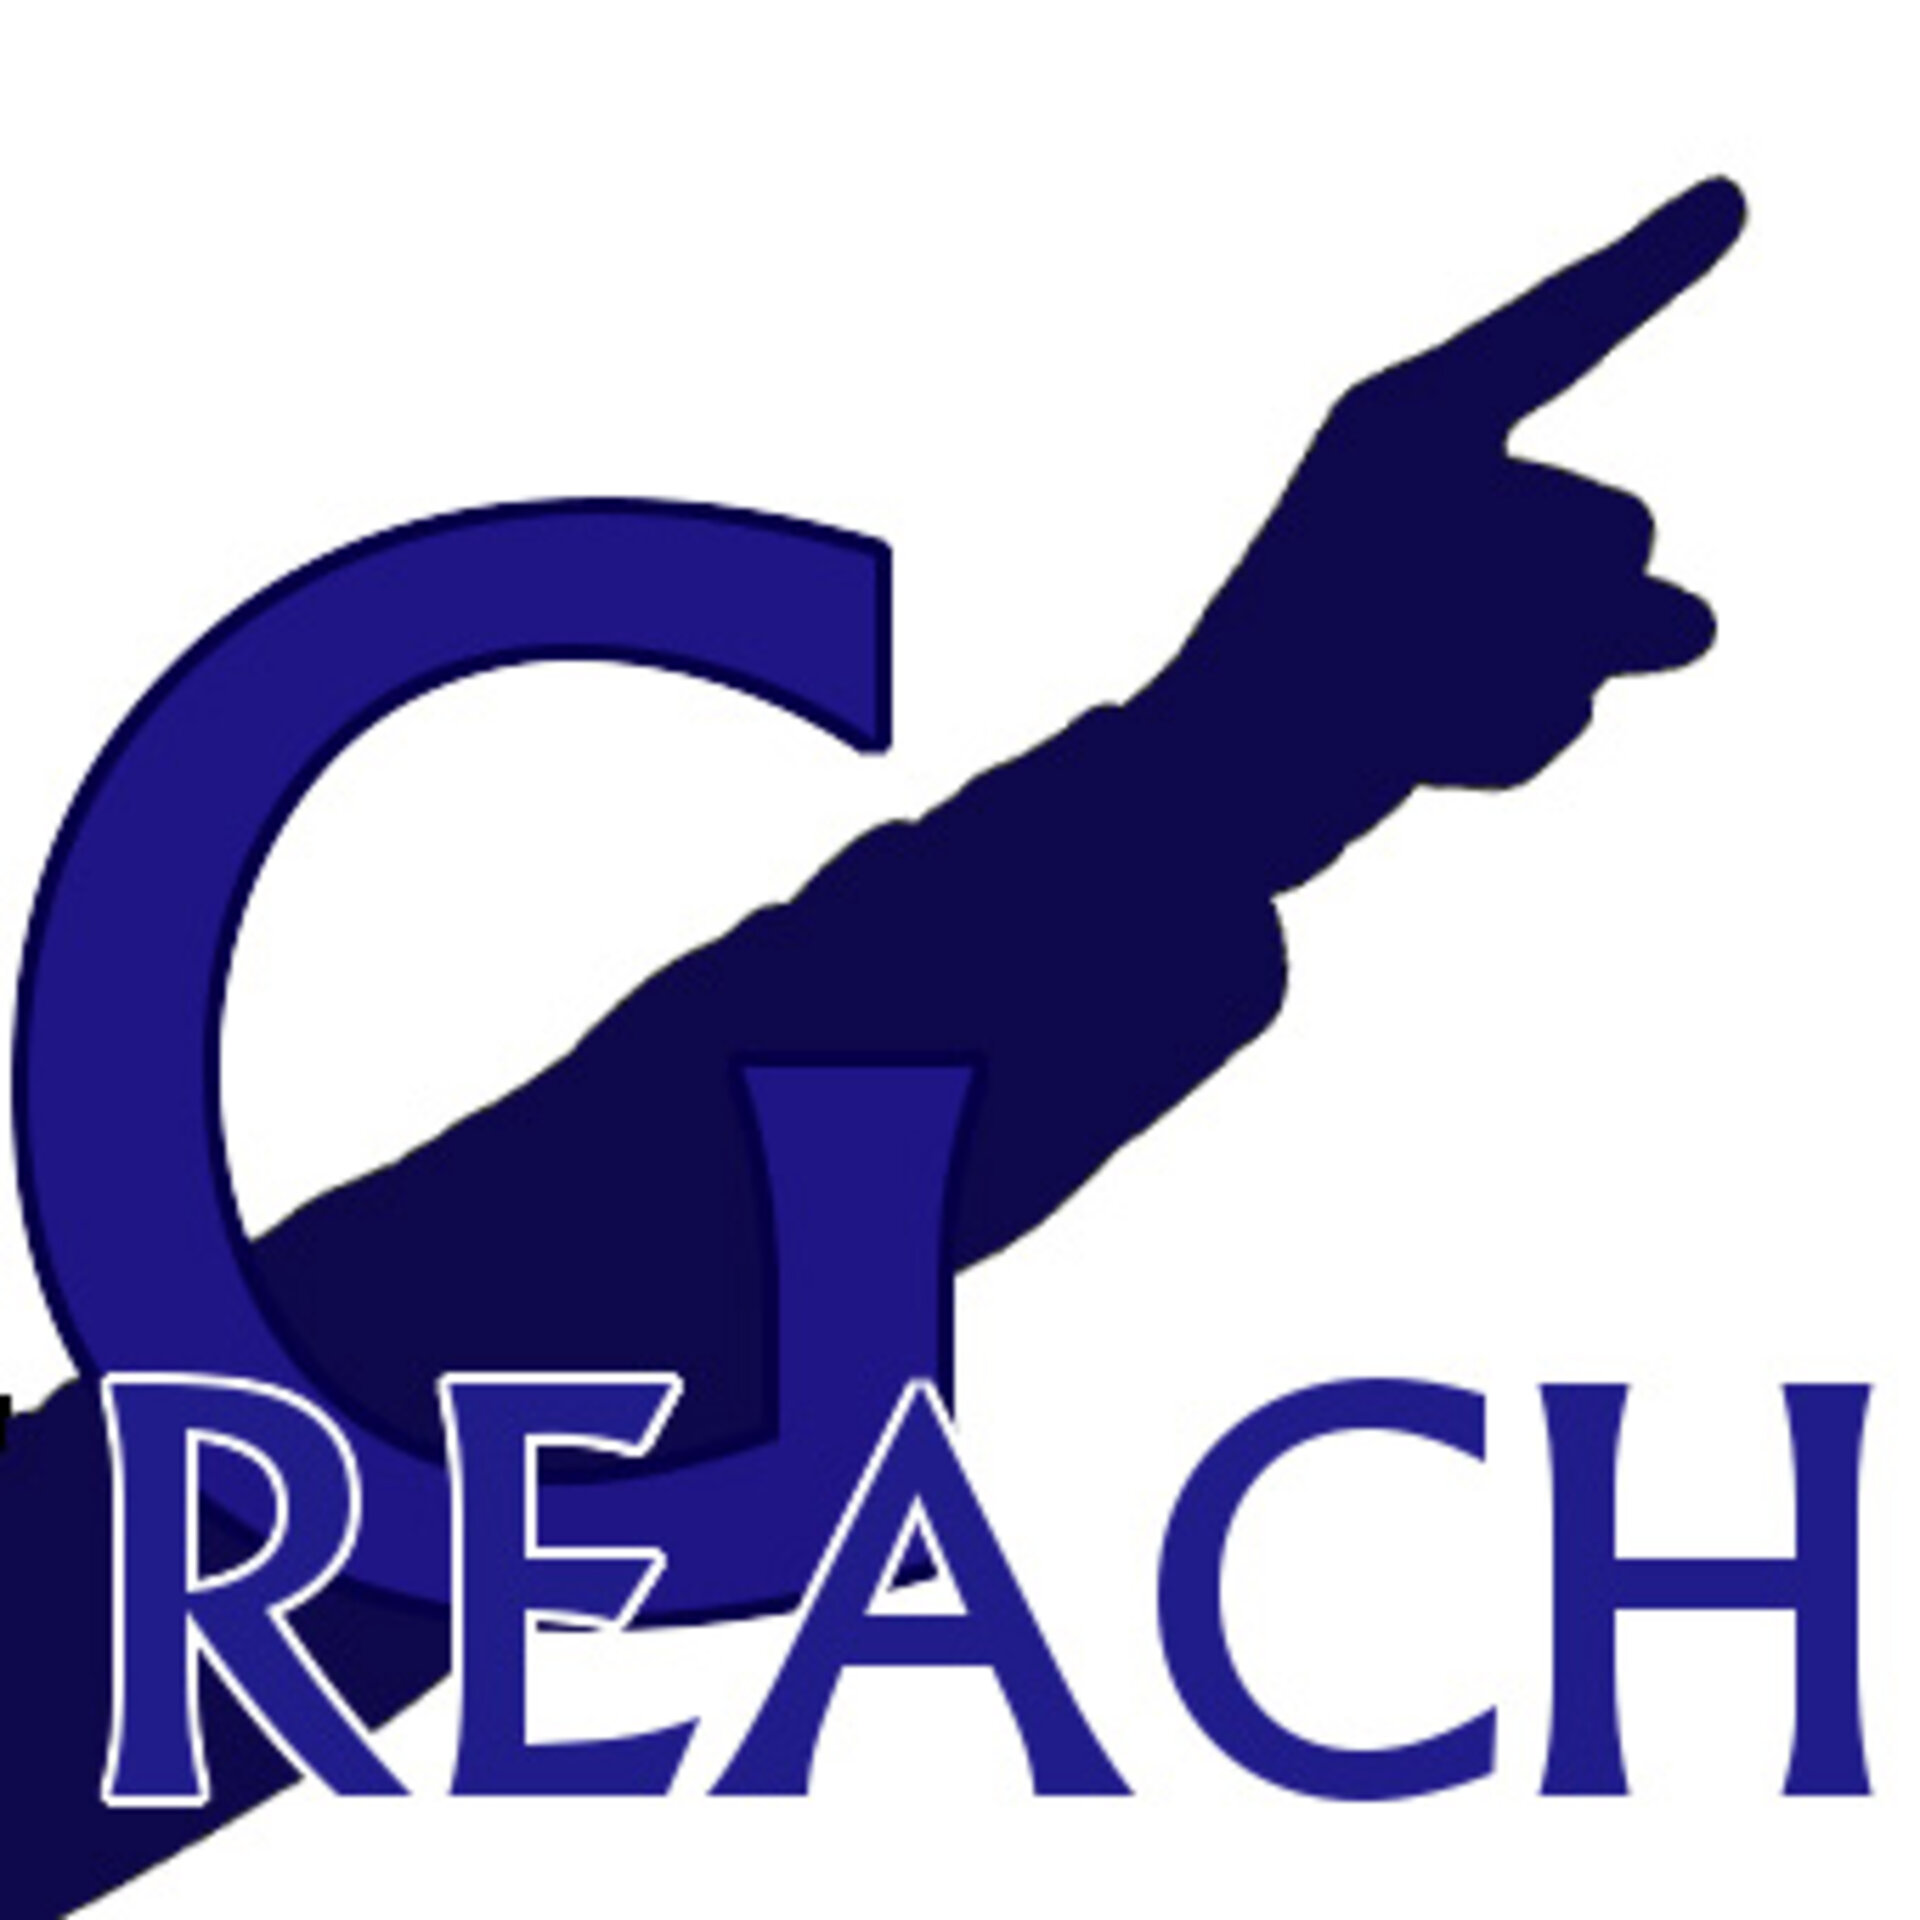 Team G-REACH logo